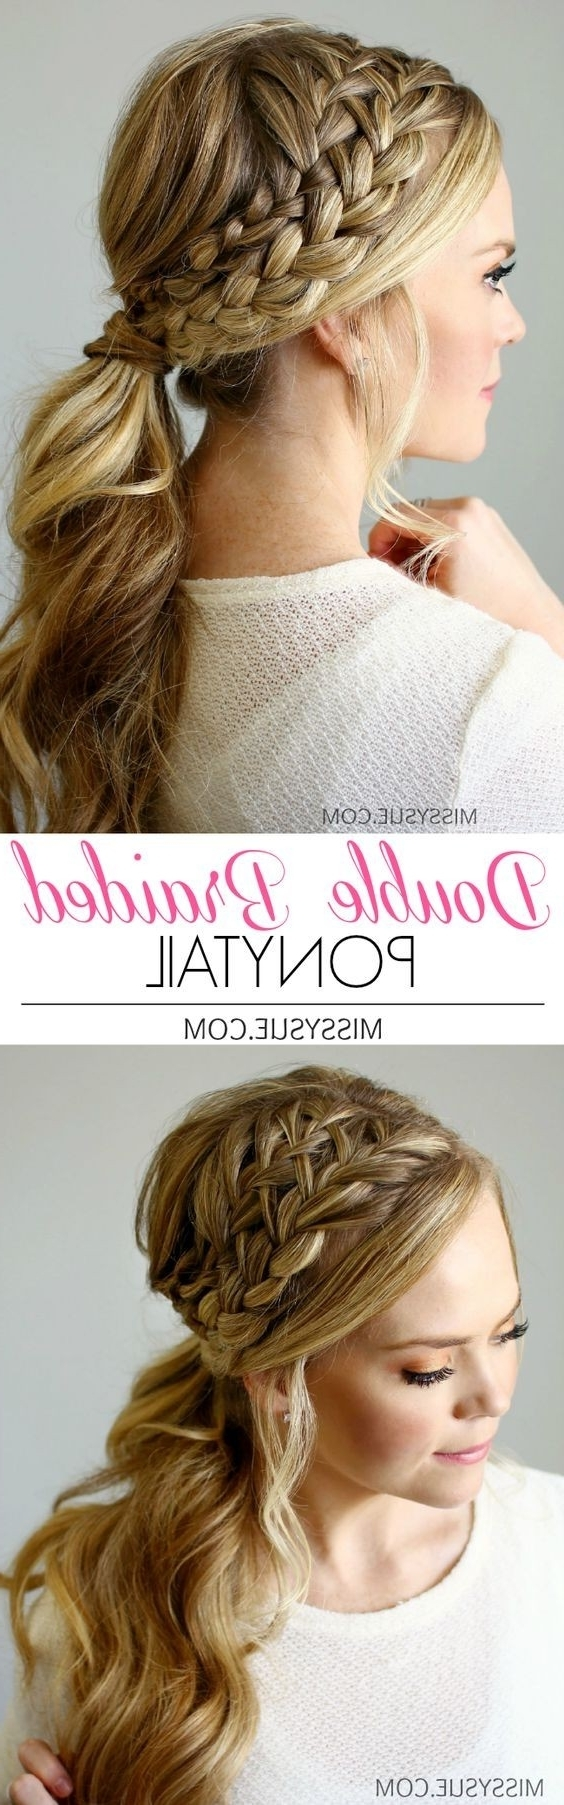 Favorite Large And Loose Braid Hairstyles With A High Pony Inside 18 Cute Braided Ponytail Styles – Popular Haircuts (Gallery 10 of 20)